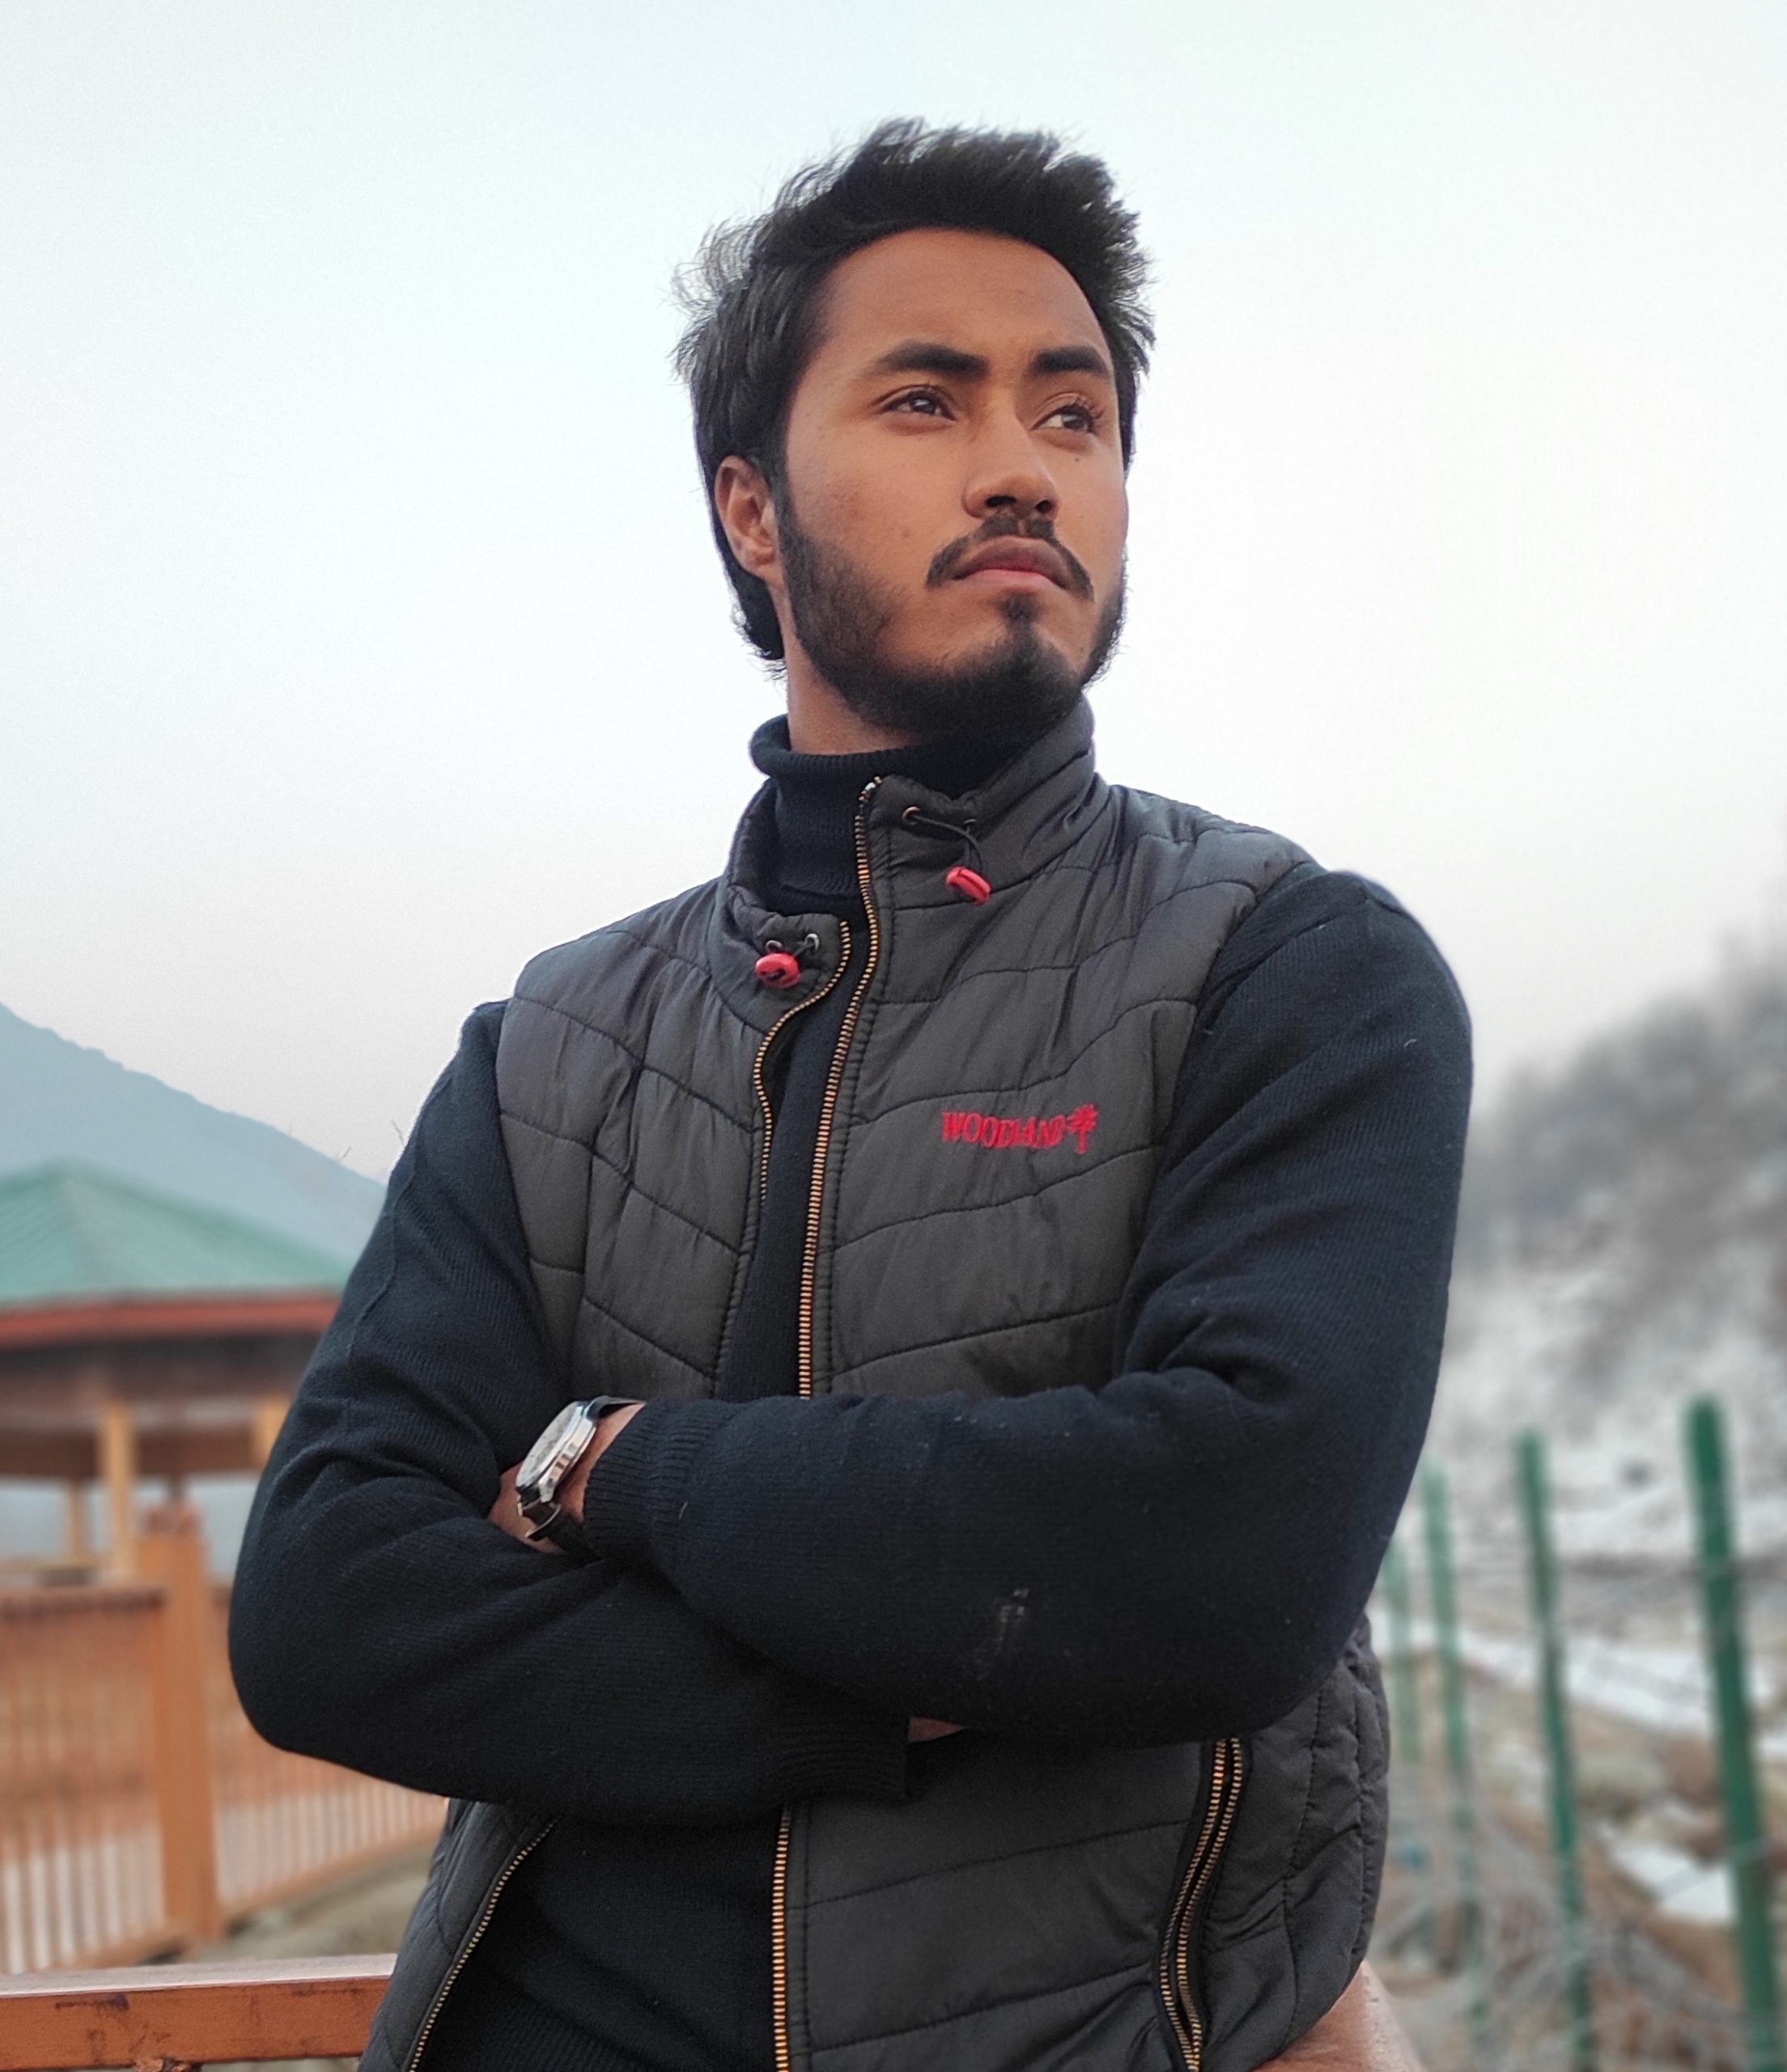 Our Language is our identity, and without that we are nothing, Asif Tariq Bhat